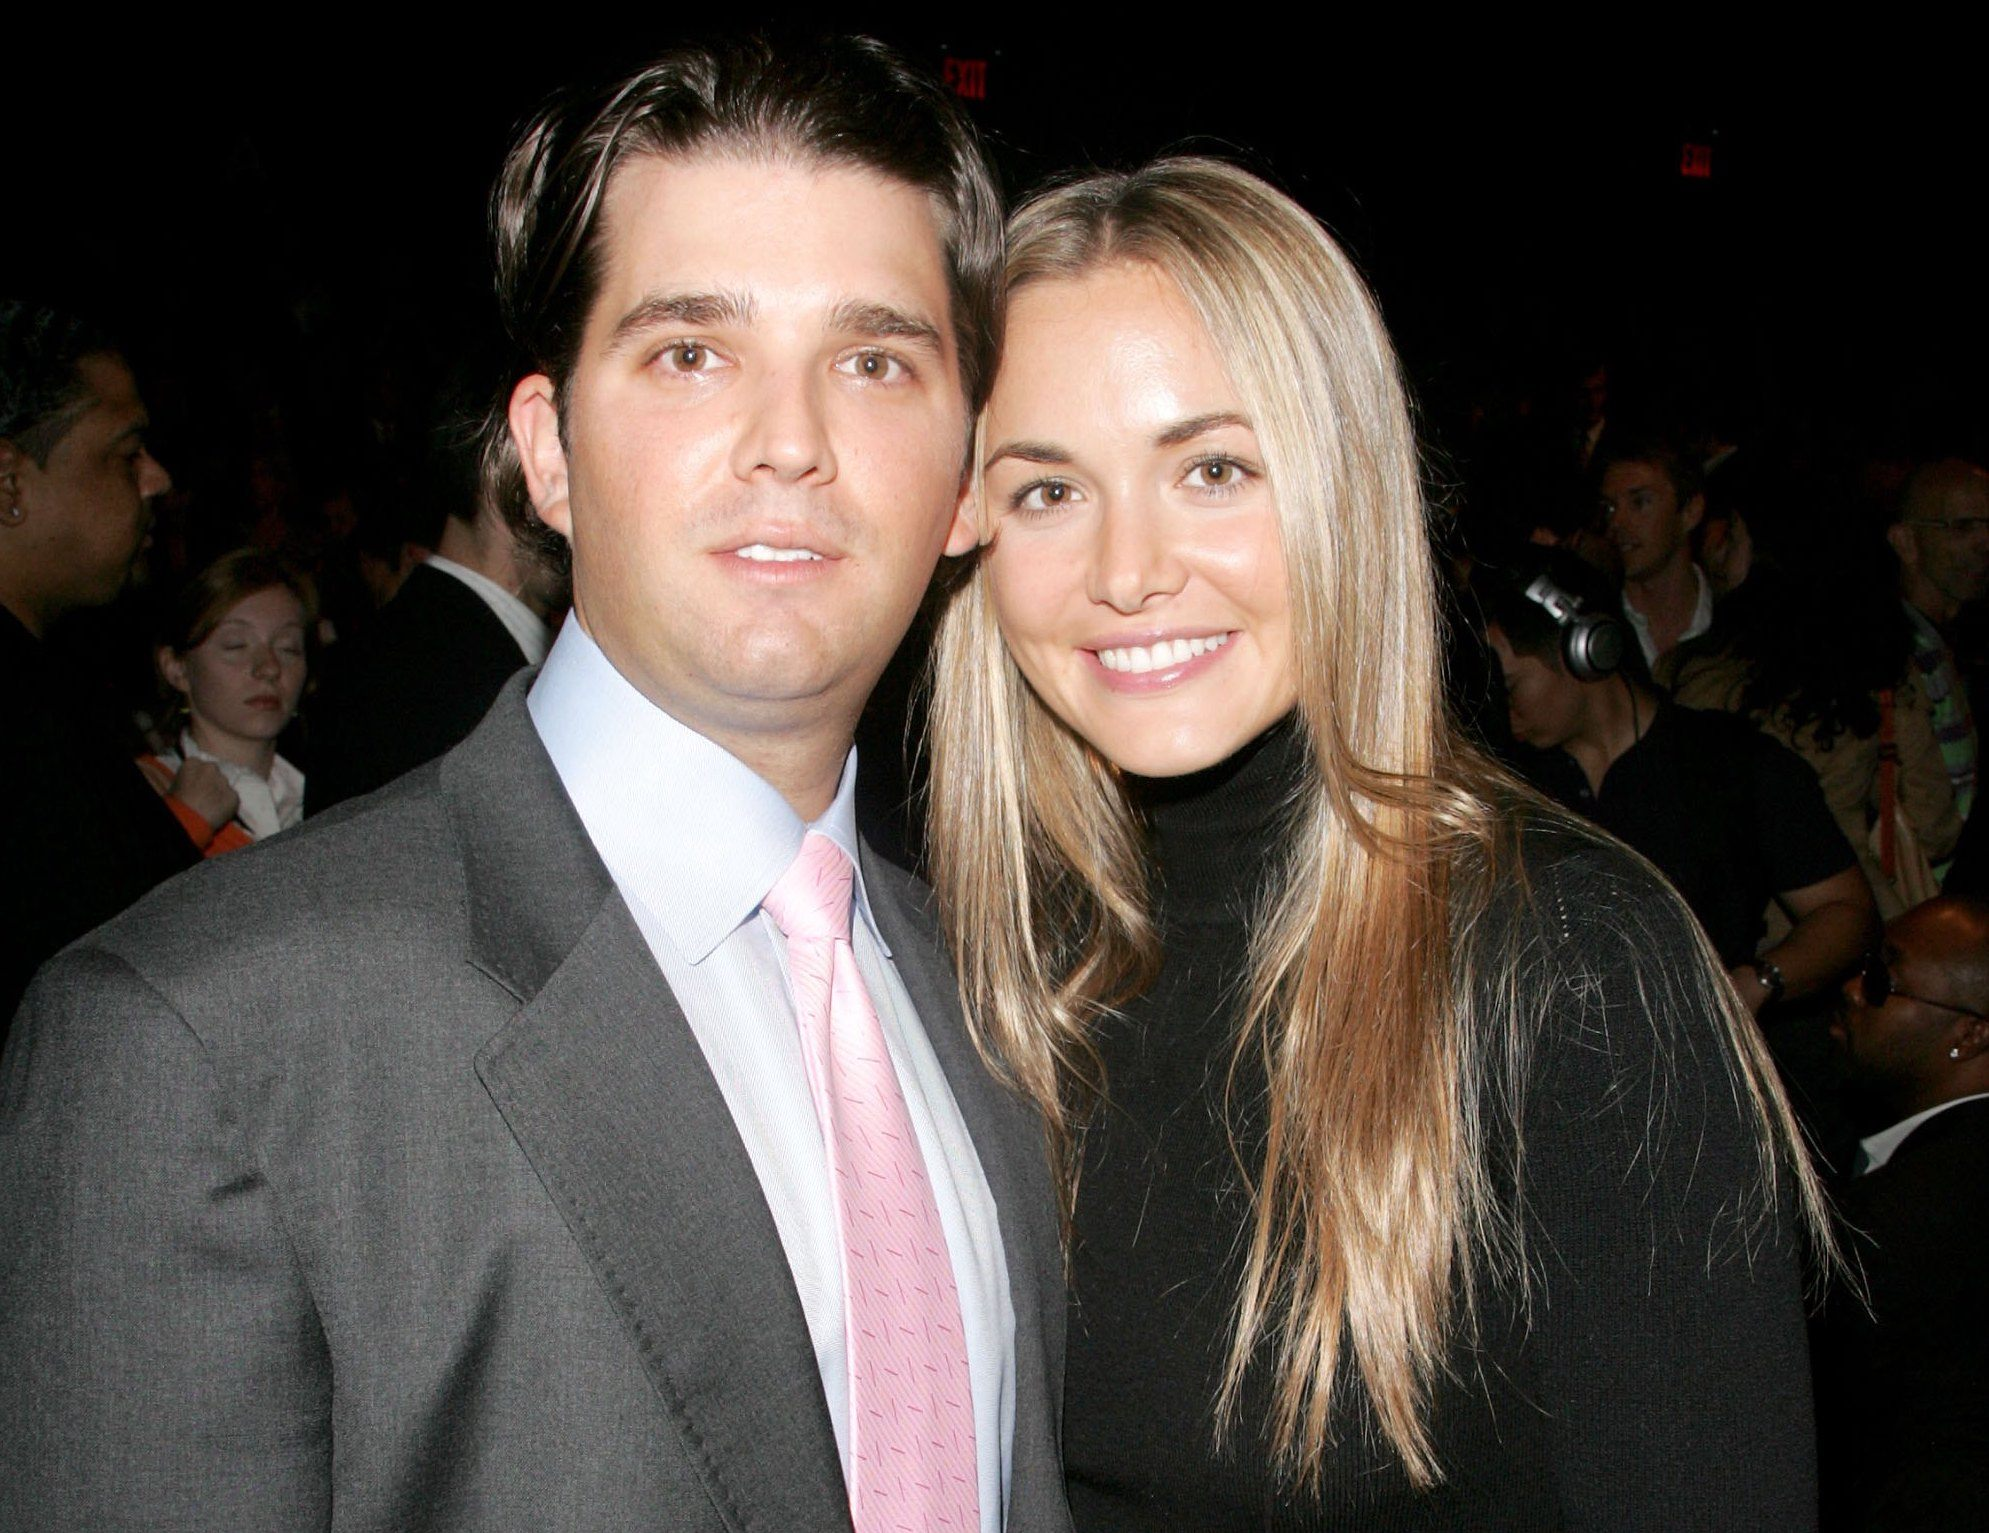 Donald Trump Jr and Vanessa Trump